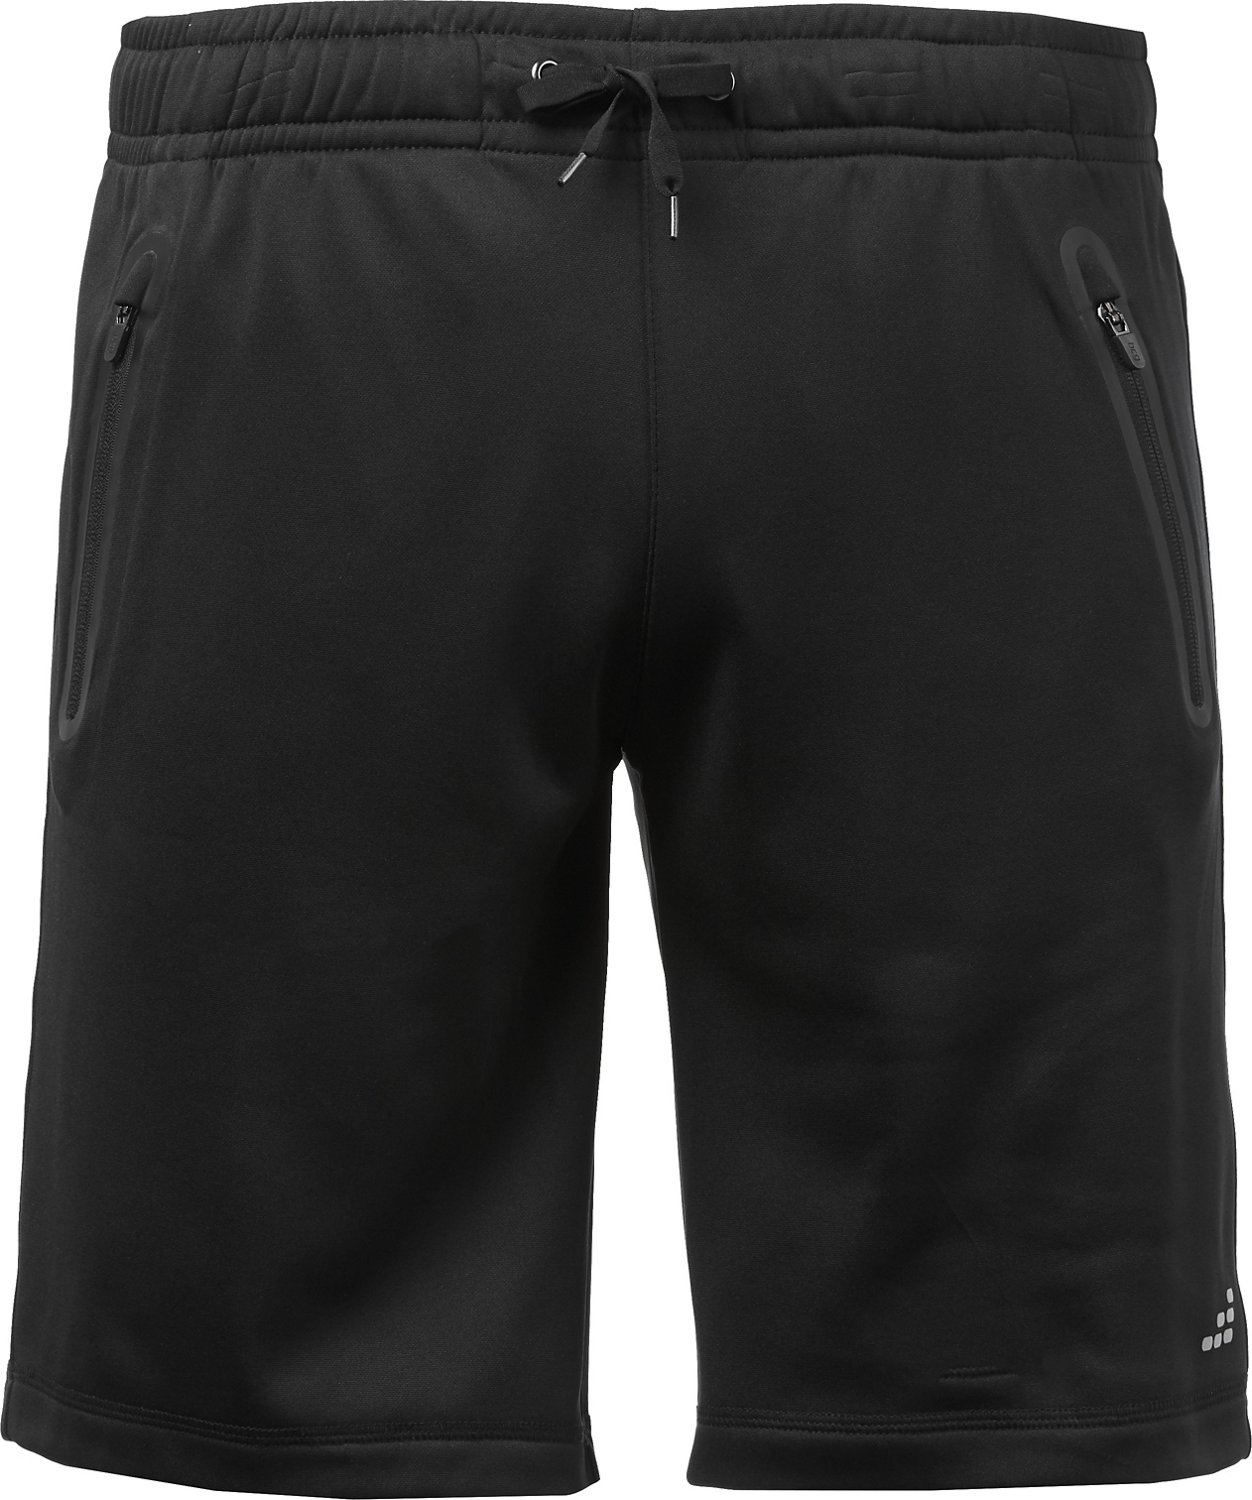 adf7e6104c4 Display product reviews for BCG Men s Athletic Lifestyle Shorts